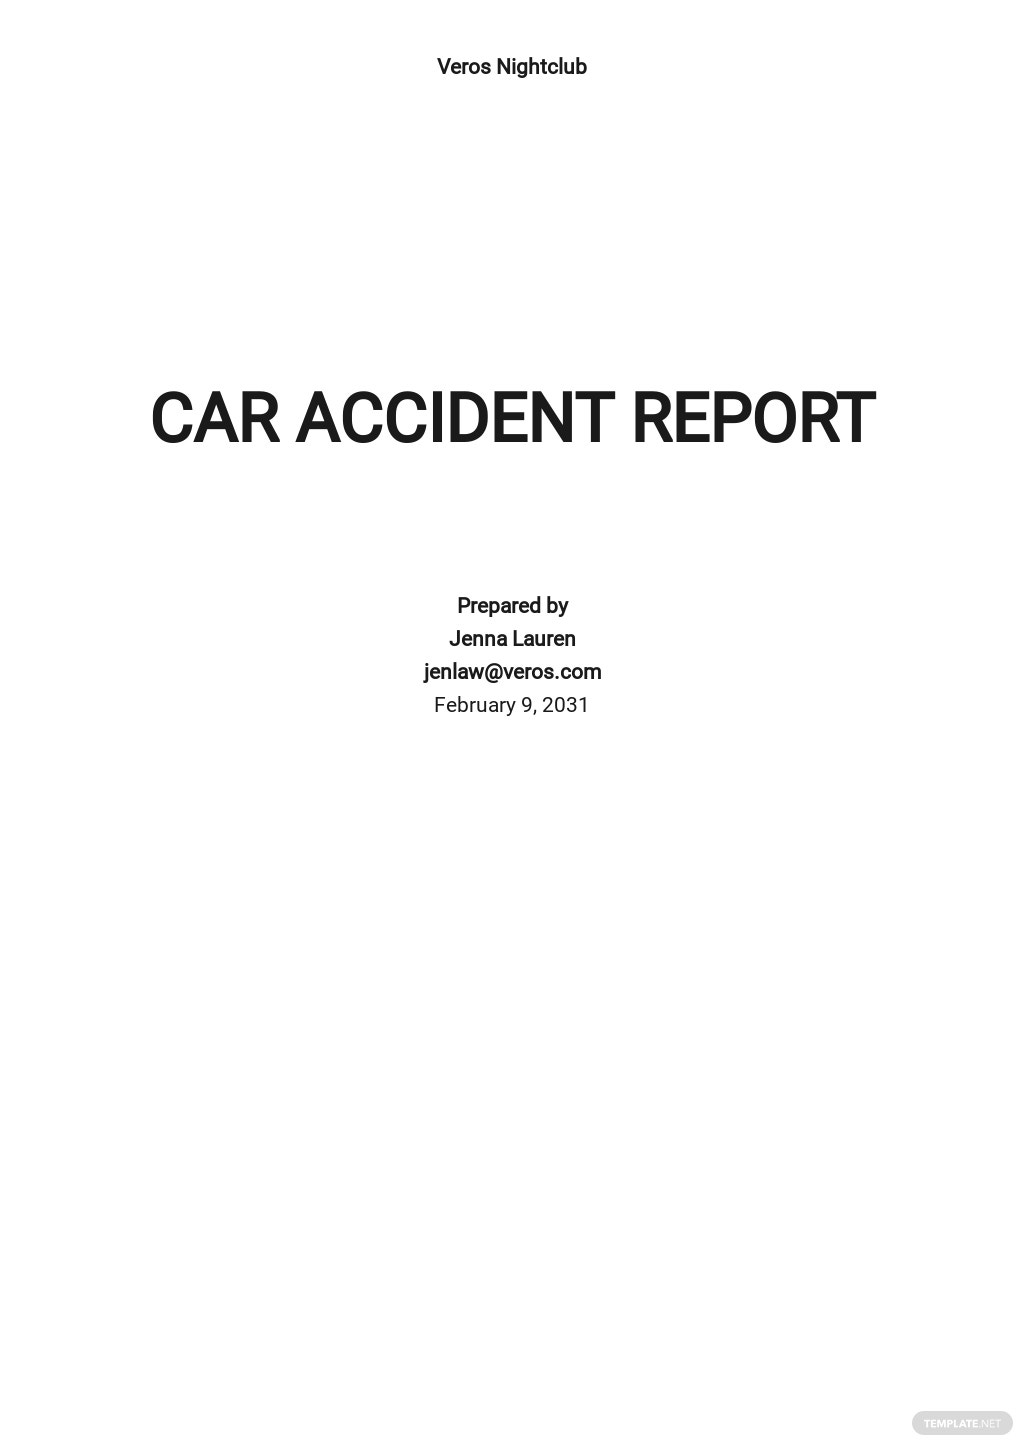 Car Accident Report Template.jpe